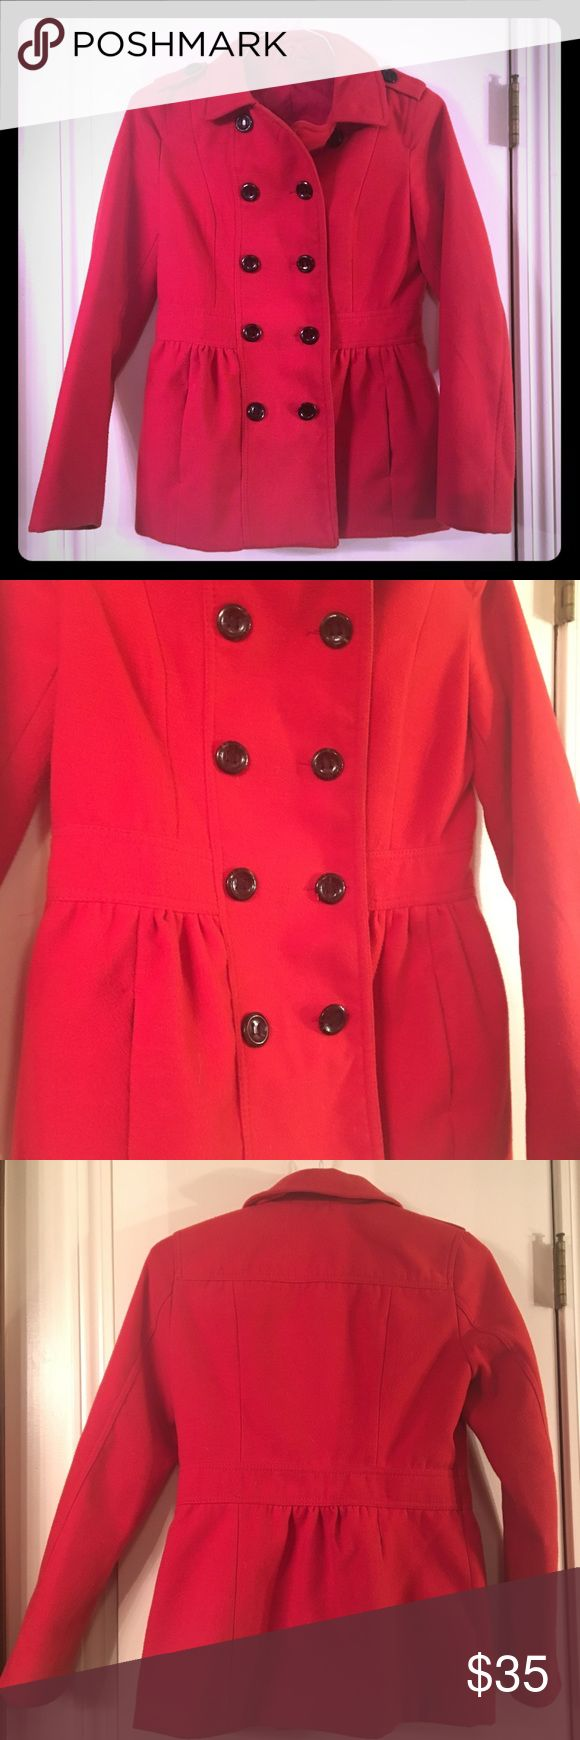 Red Pea Coat Red Pea Coat - size 6. Great condition! Divided Jackets & Coats Pea Coats